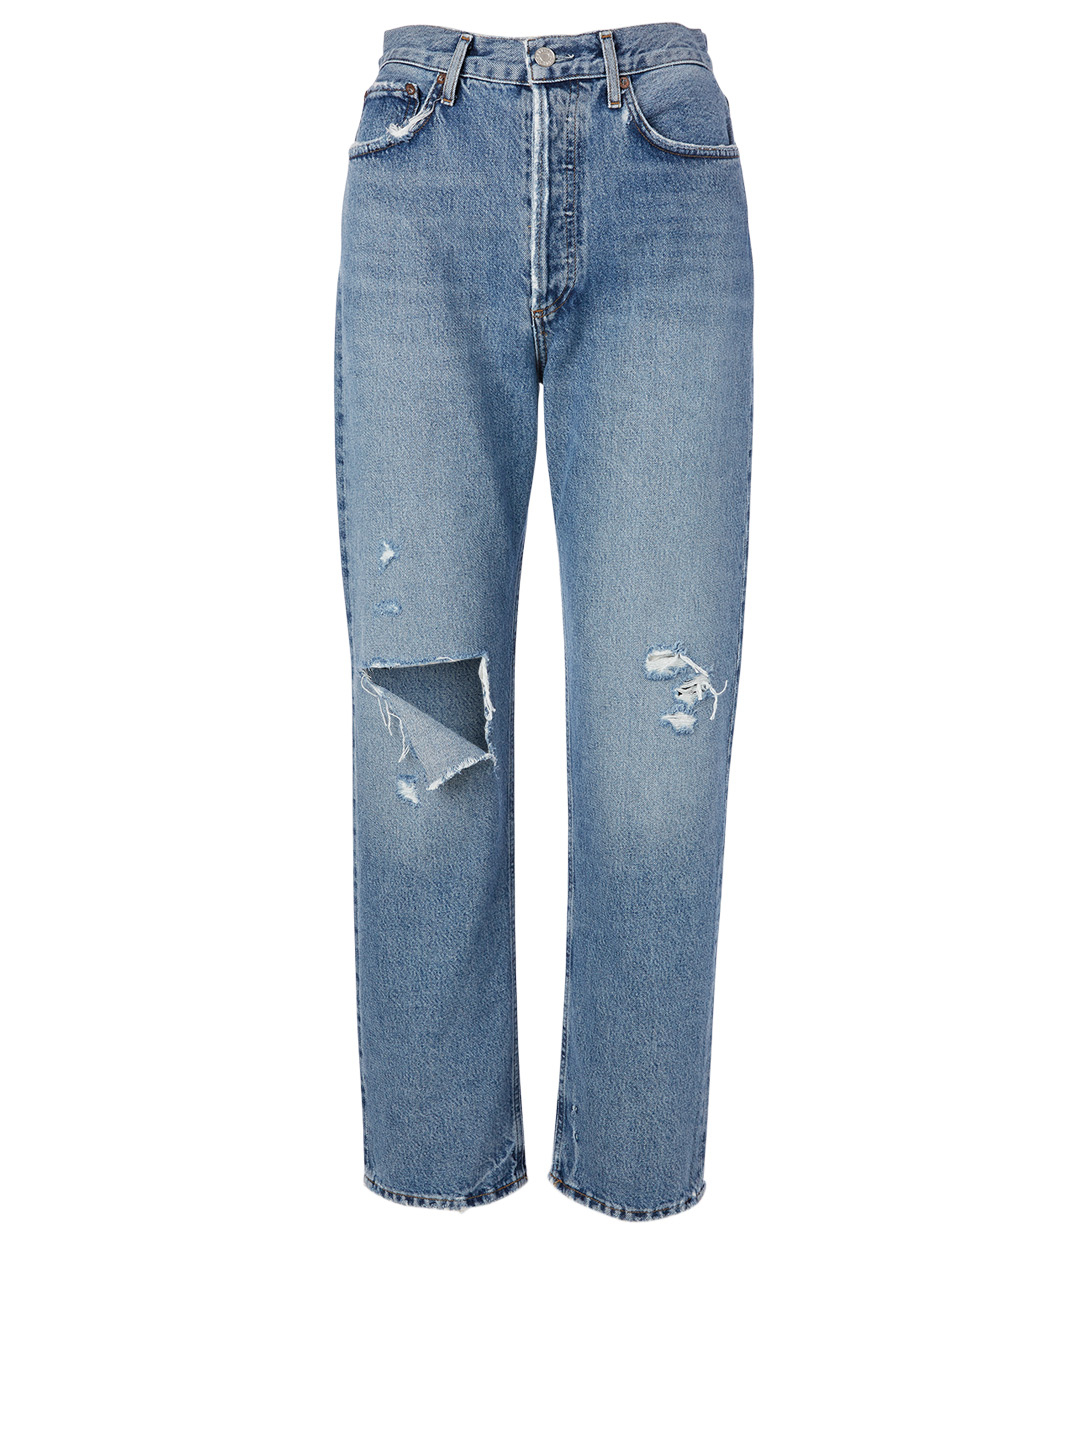 AGOLDE 90s Pinch Waist High-Waisted Jeans Women's Blue